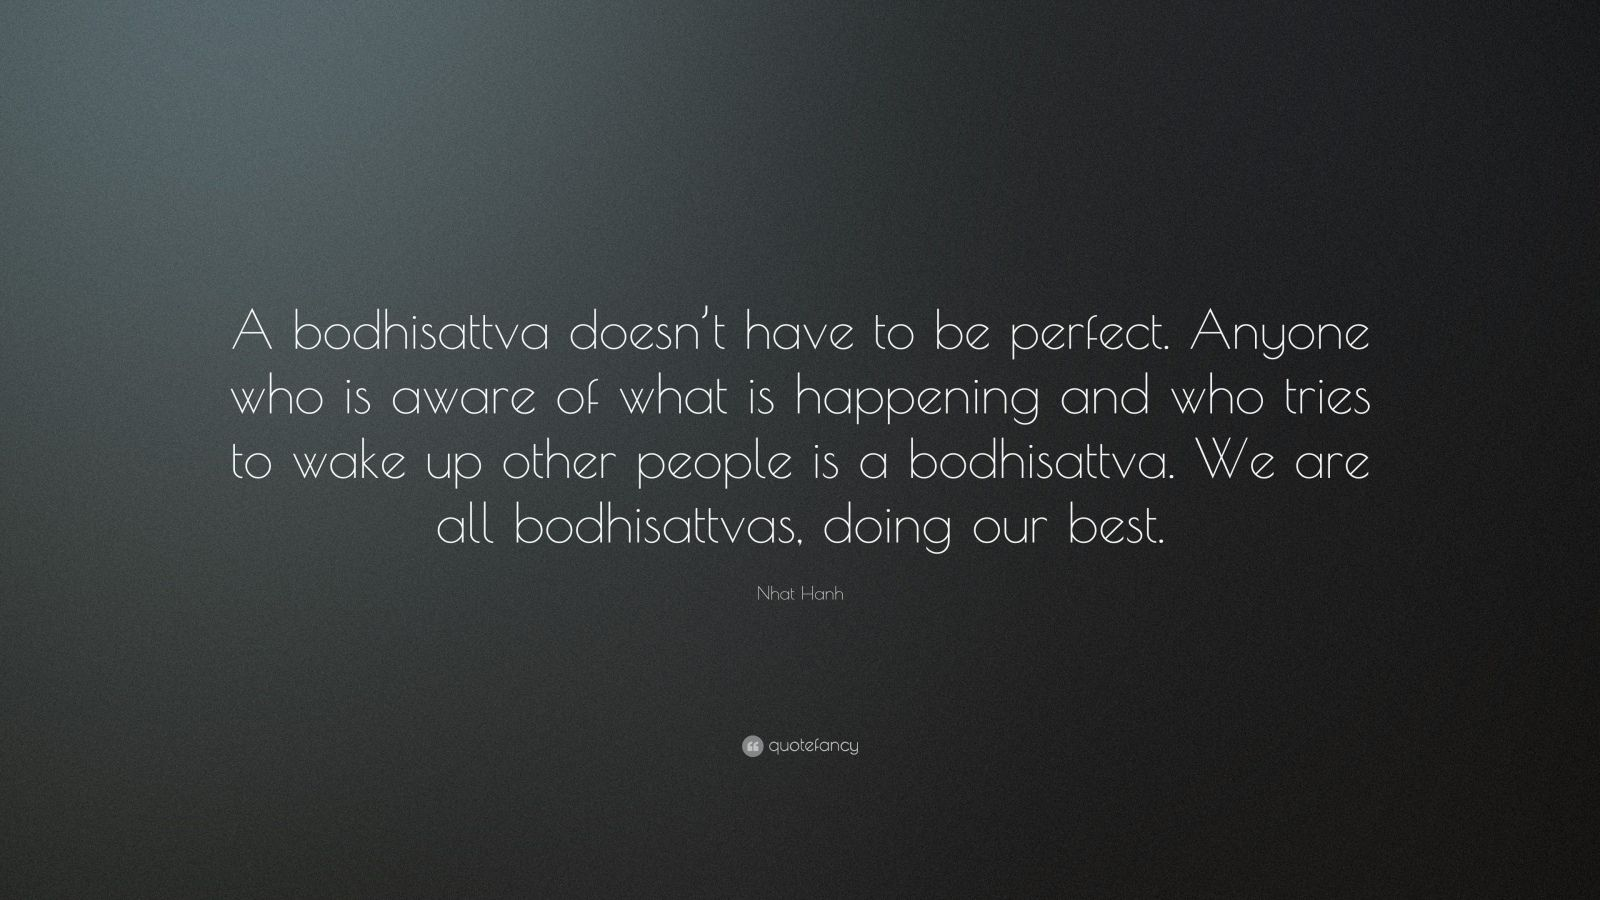 """Nhat Hanh Quote: """"A bodhisattva doesn't have to be perfect. Anyone who is aware of what is happening and who tries to wake up other people is a bodhisattva. We are all bodhisattvas, doing our best."""""""